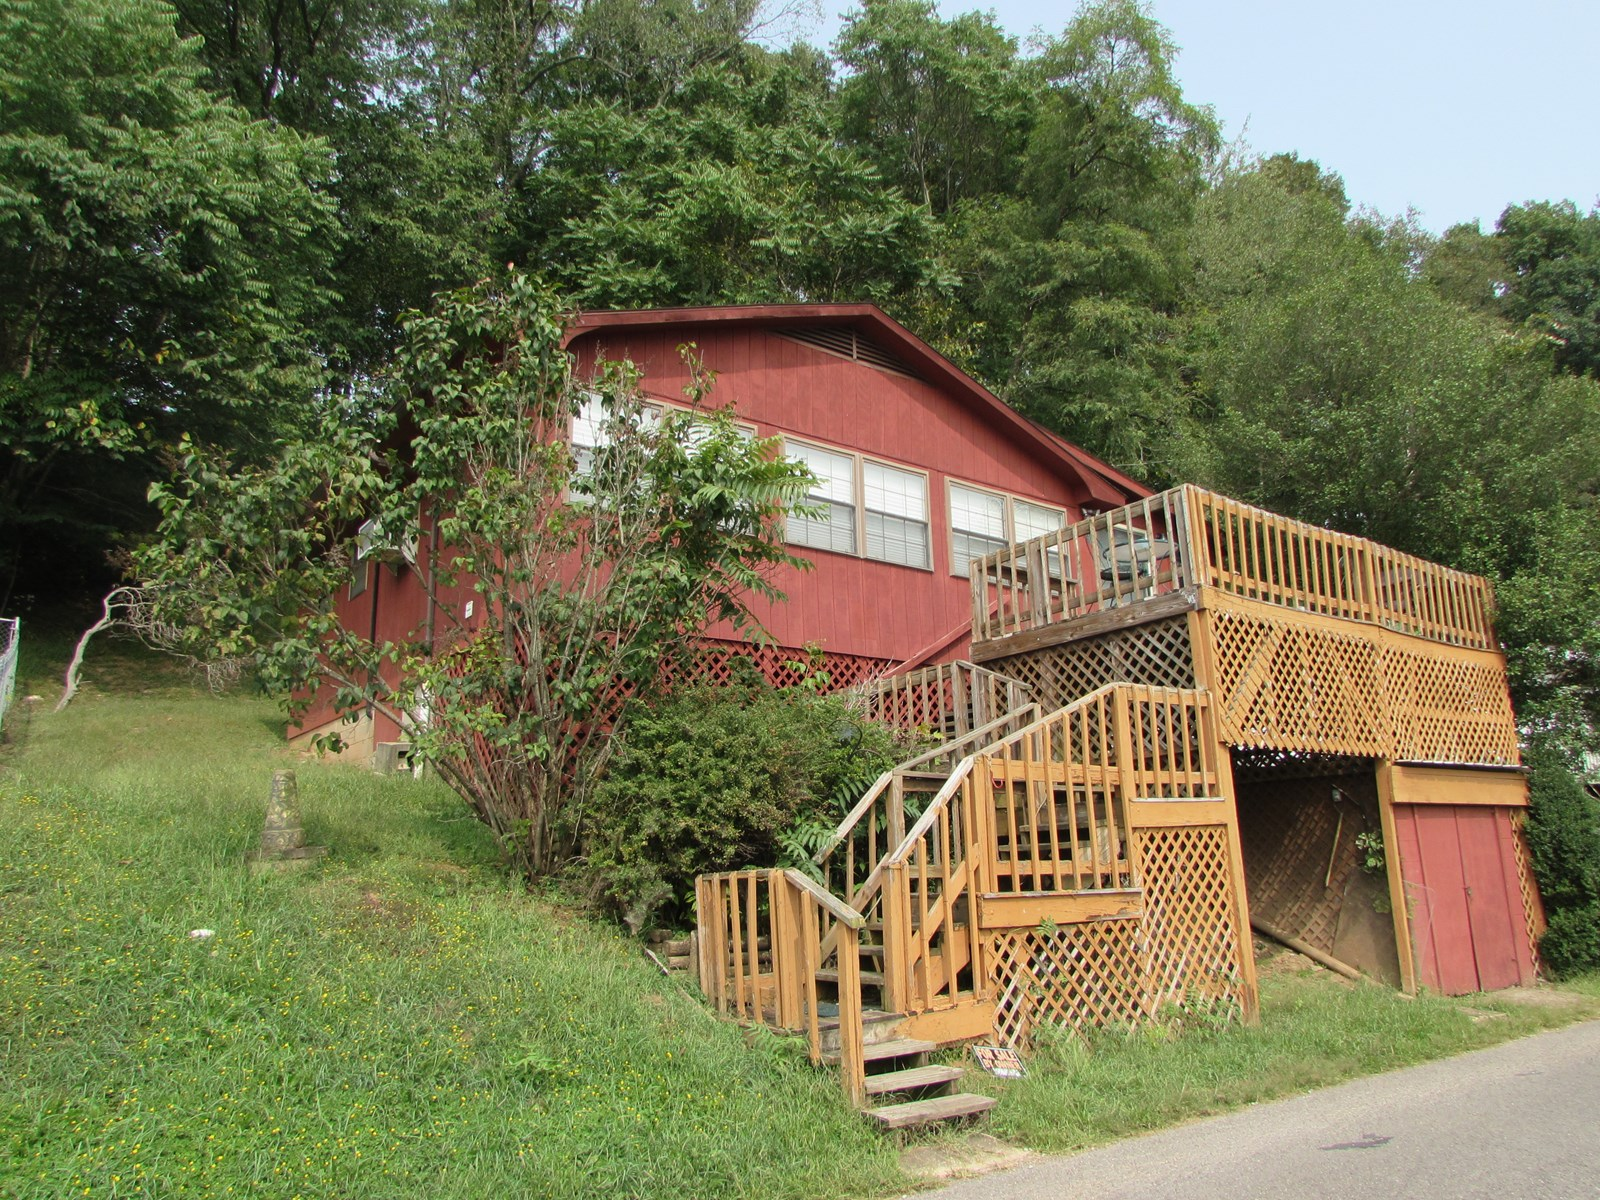 Cabin get-a-way at Crystal Lake in West Union, WV